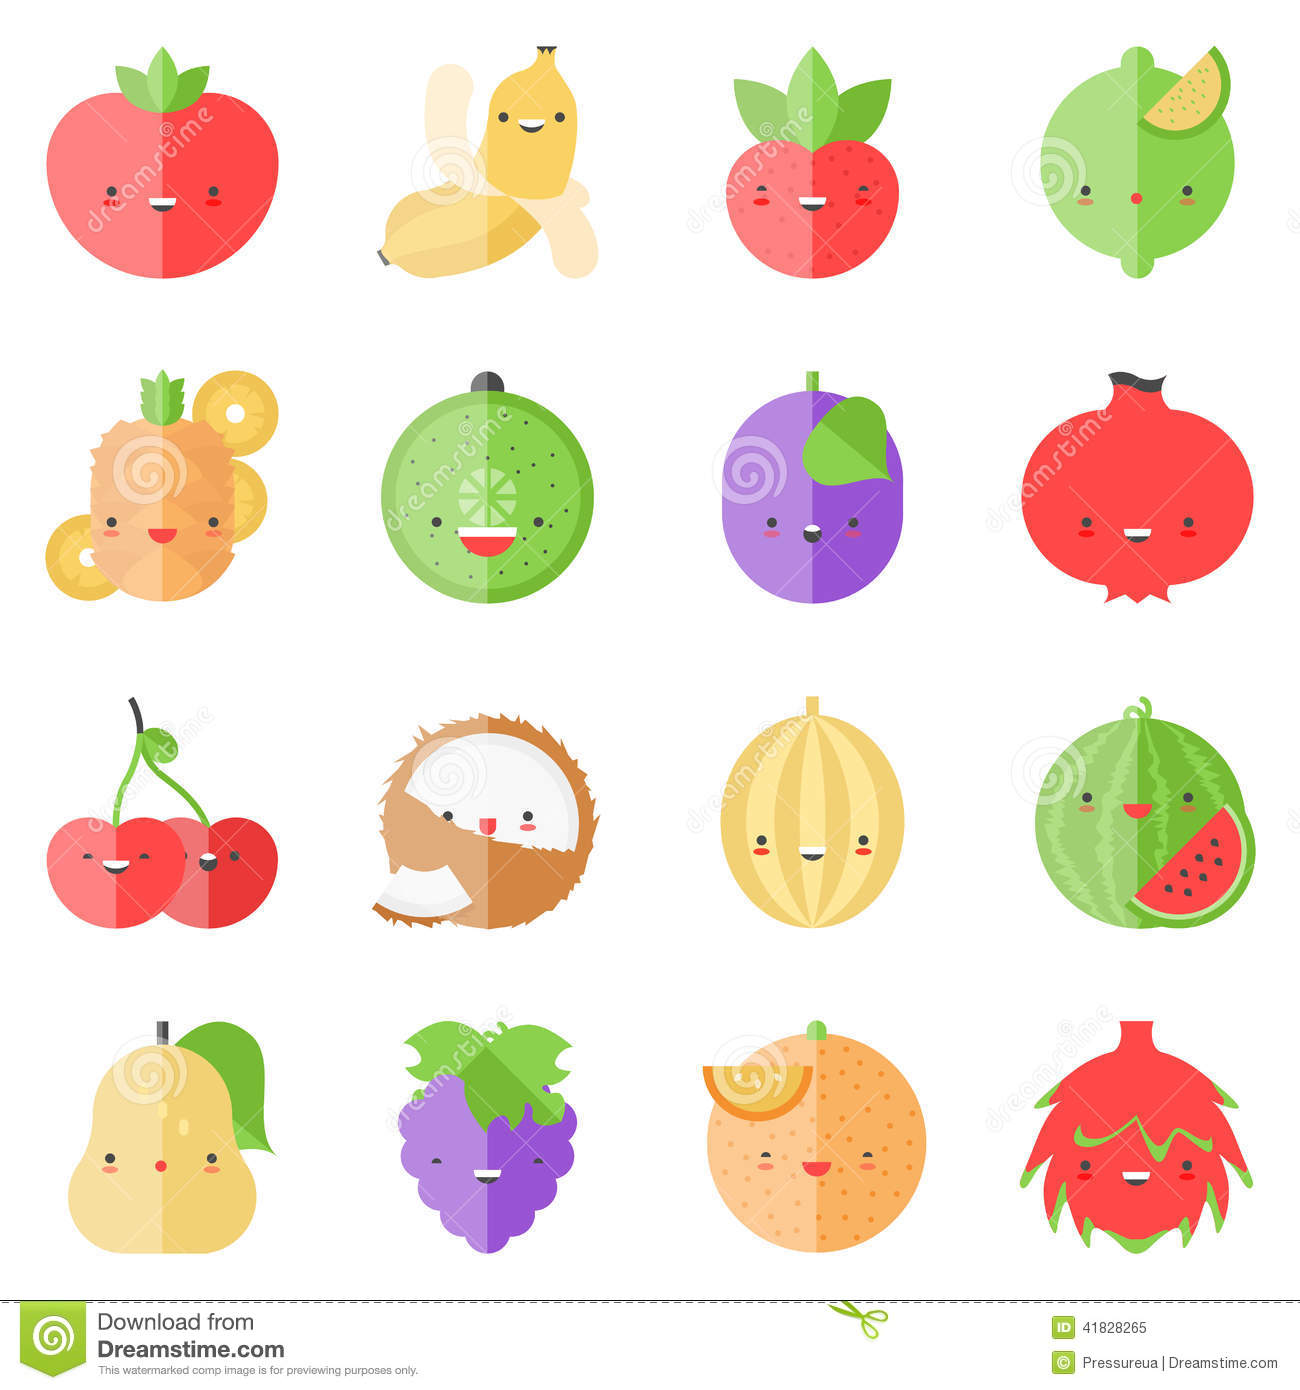 12 Cute Flat Icon Images